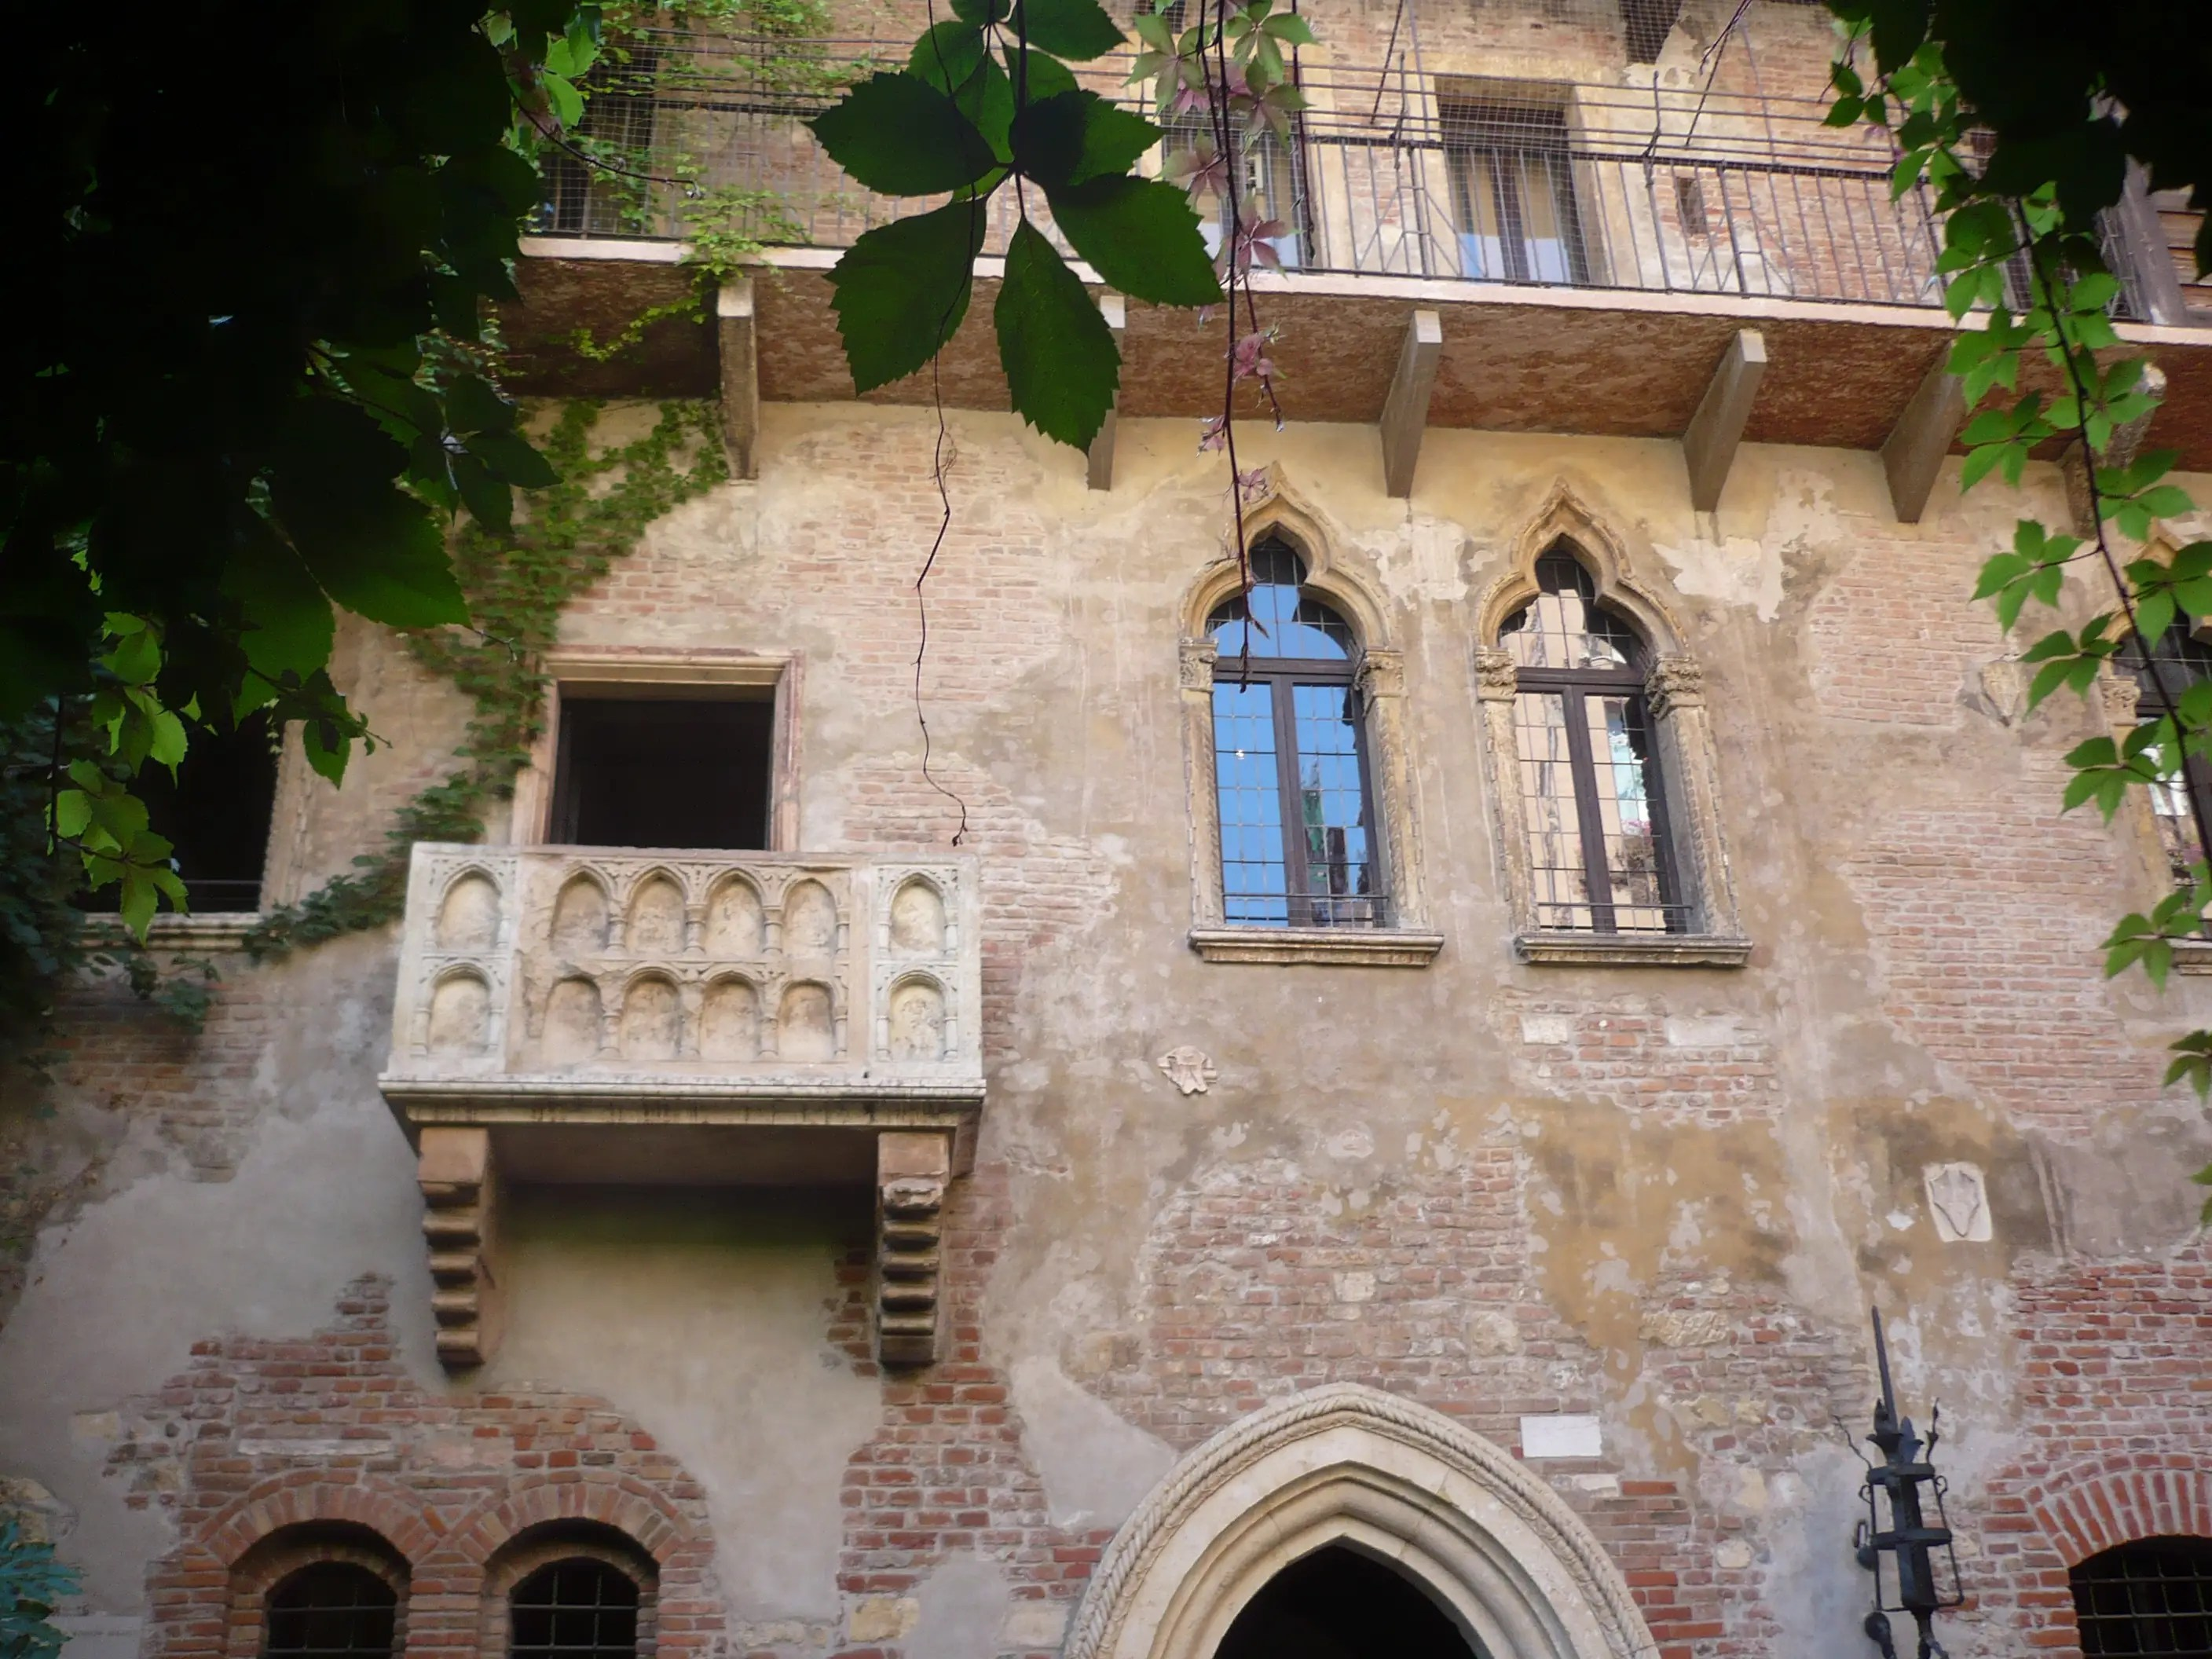 Re-enact the famous Shakespearean scene on Juliet's balcony in Verona.